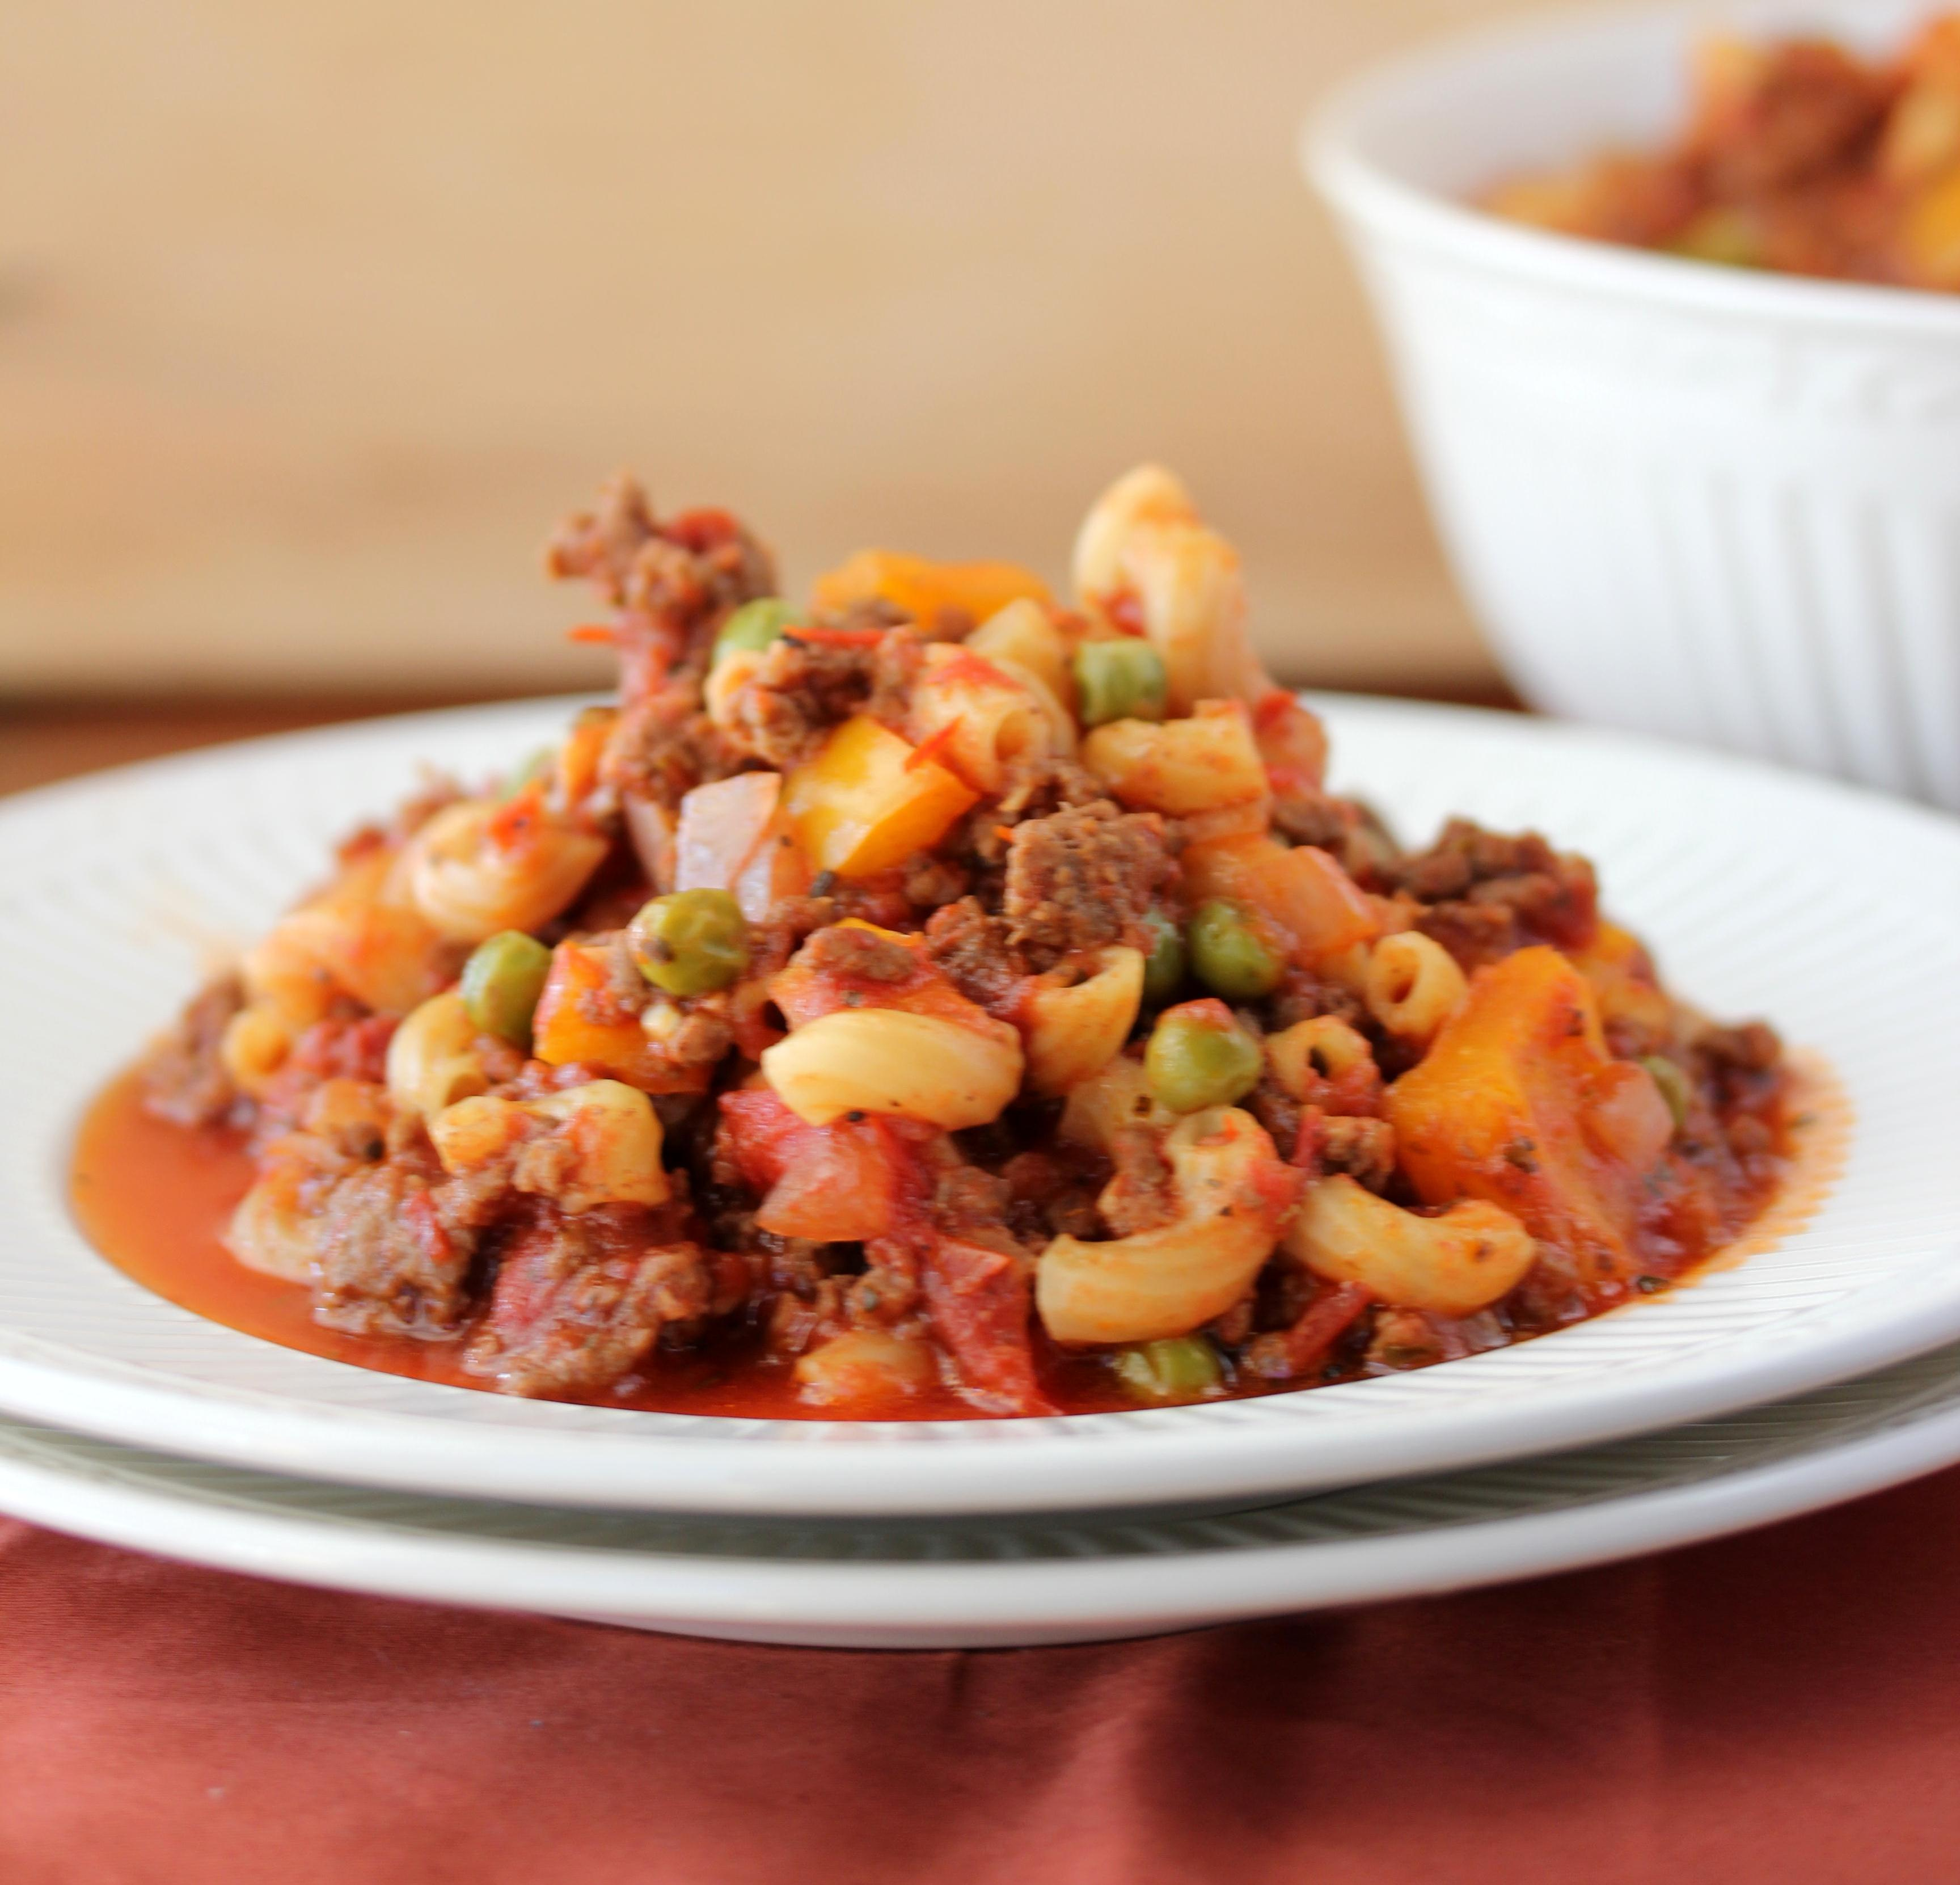 How To Make Old Fashioned Goulash